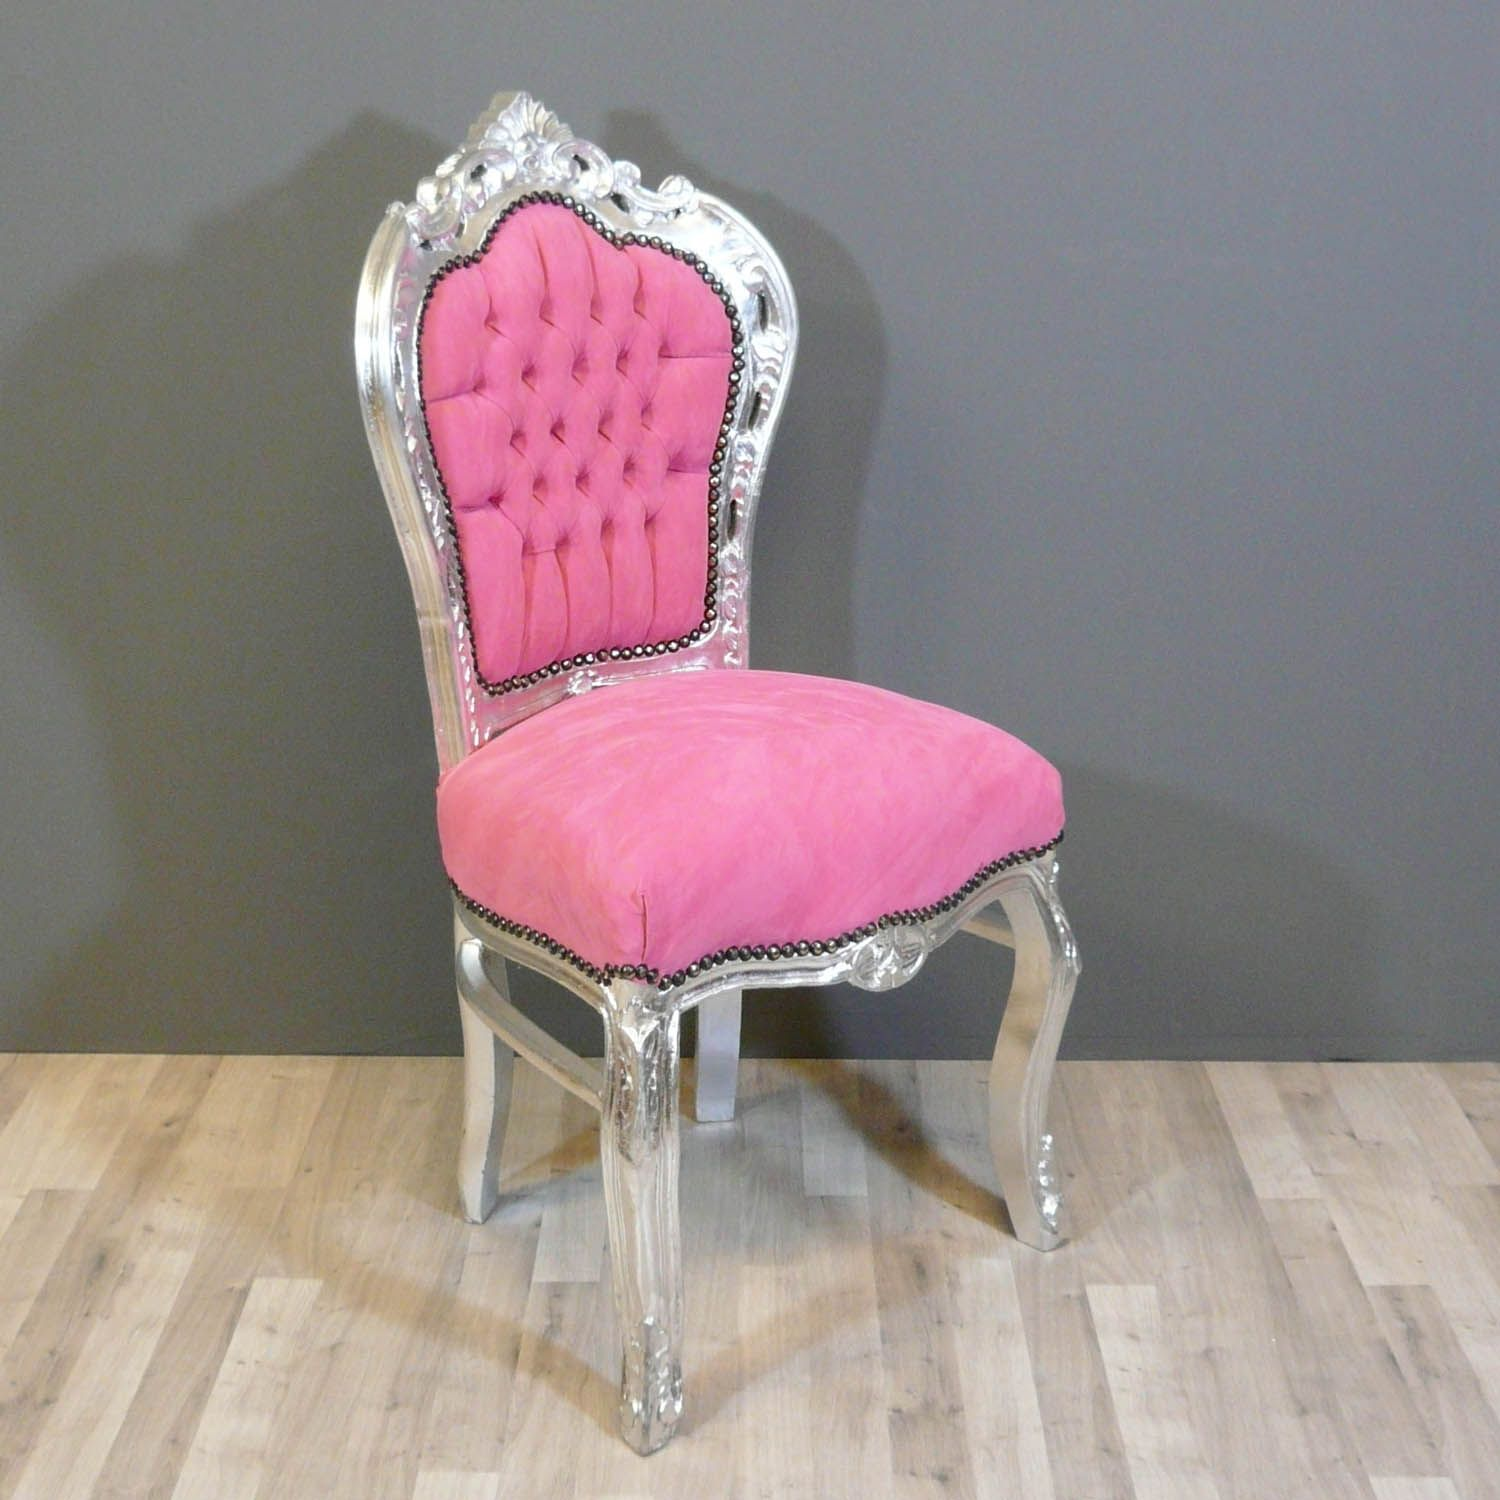 Chaise baroque rose pinterest meubles baroques chaise - Chaise baroque blanche ...